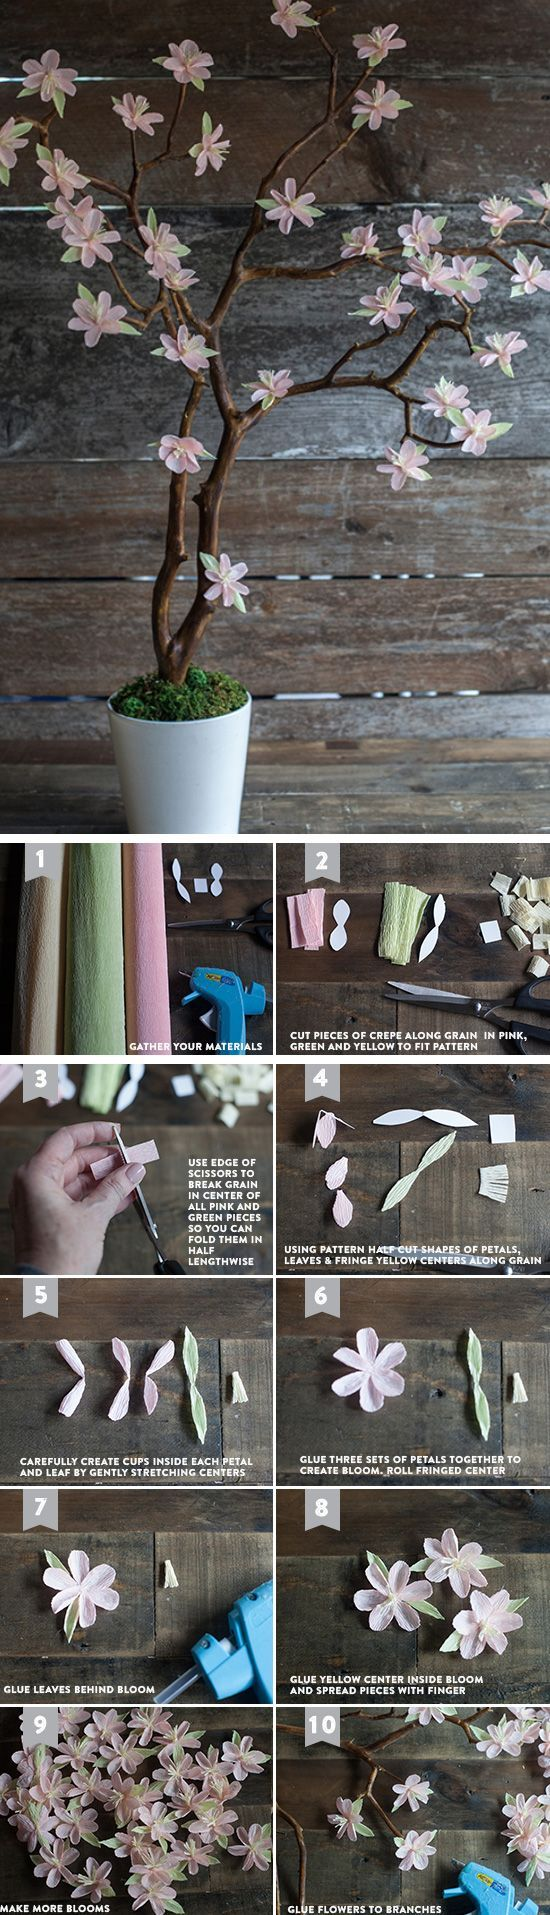 Wedding decorations using crepe paper   DIY Spring Wedding Ideas on a Budget  Pinterest  Spring wedding